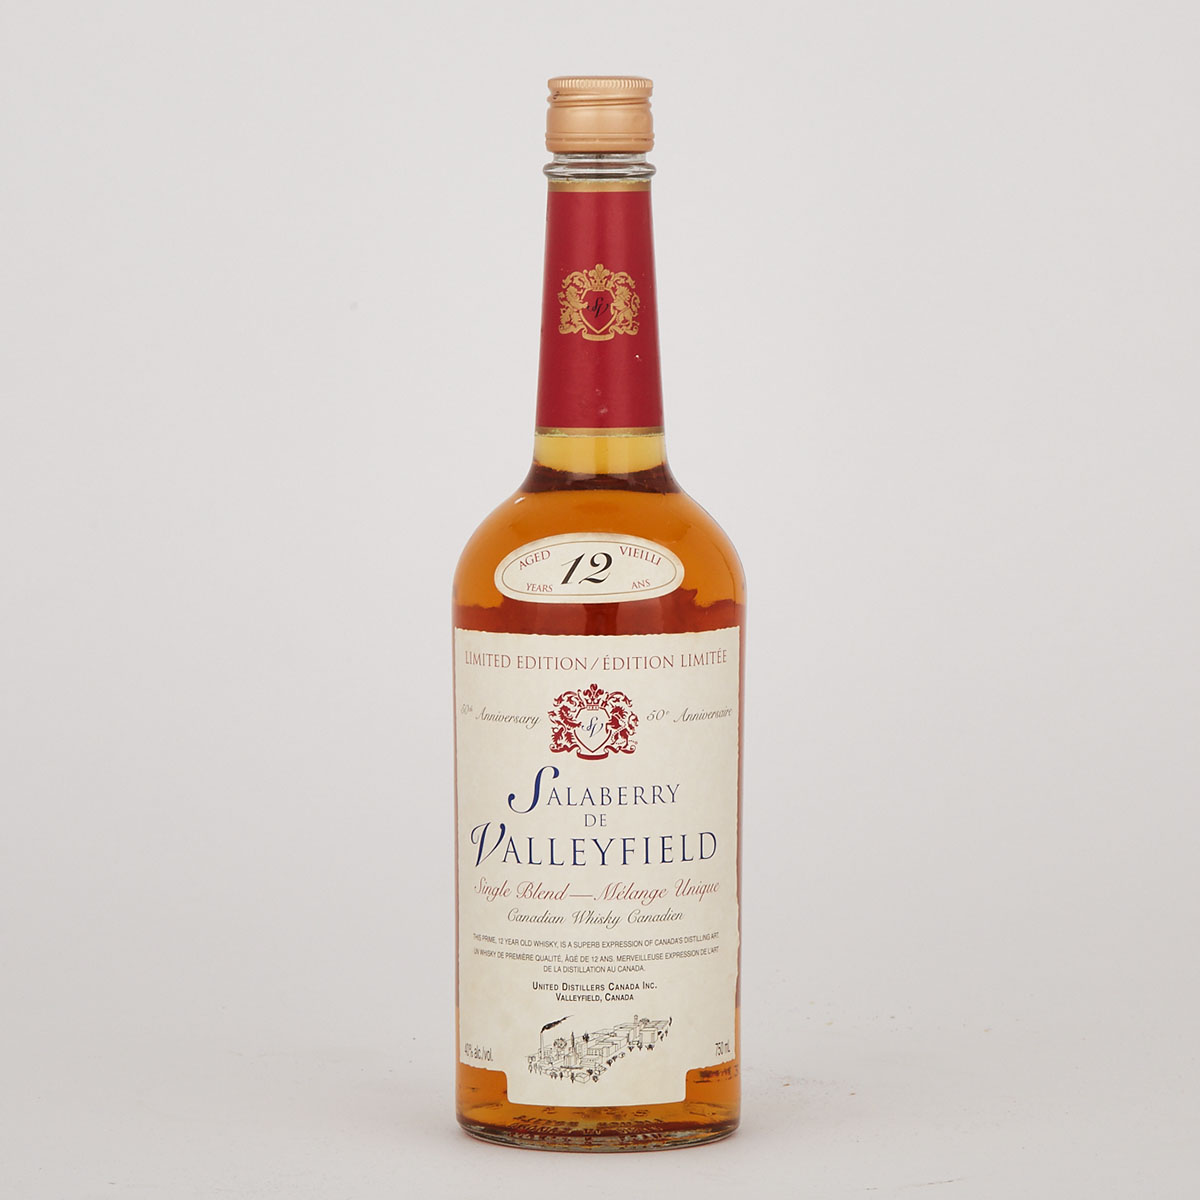 SALABERRY DE VALLEYFIELD SINGLE BLEND CANADIAN WHISKY  (1)